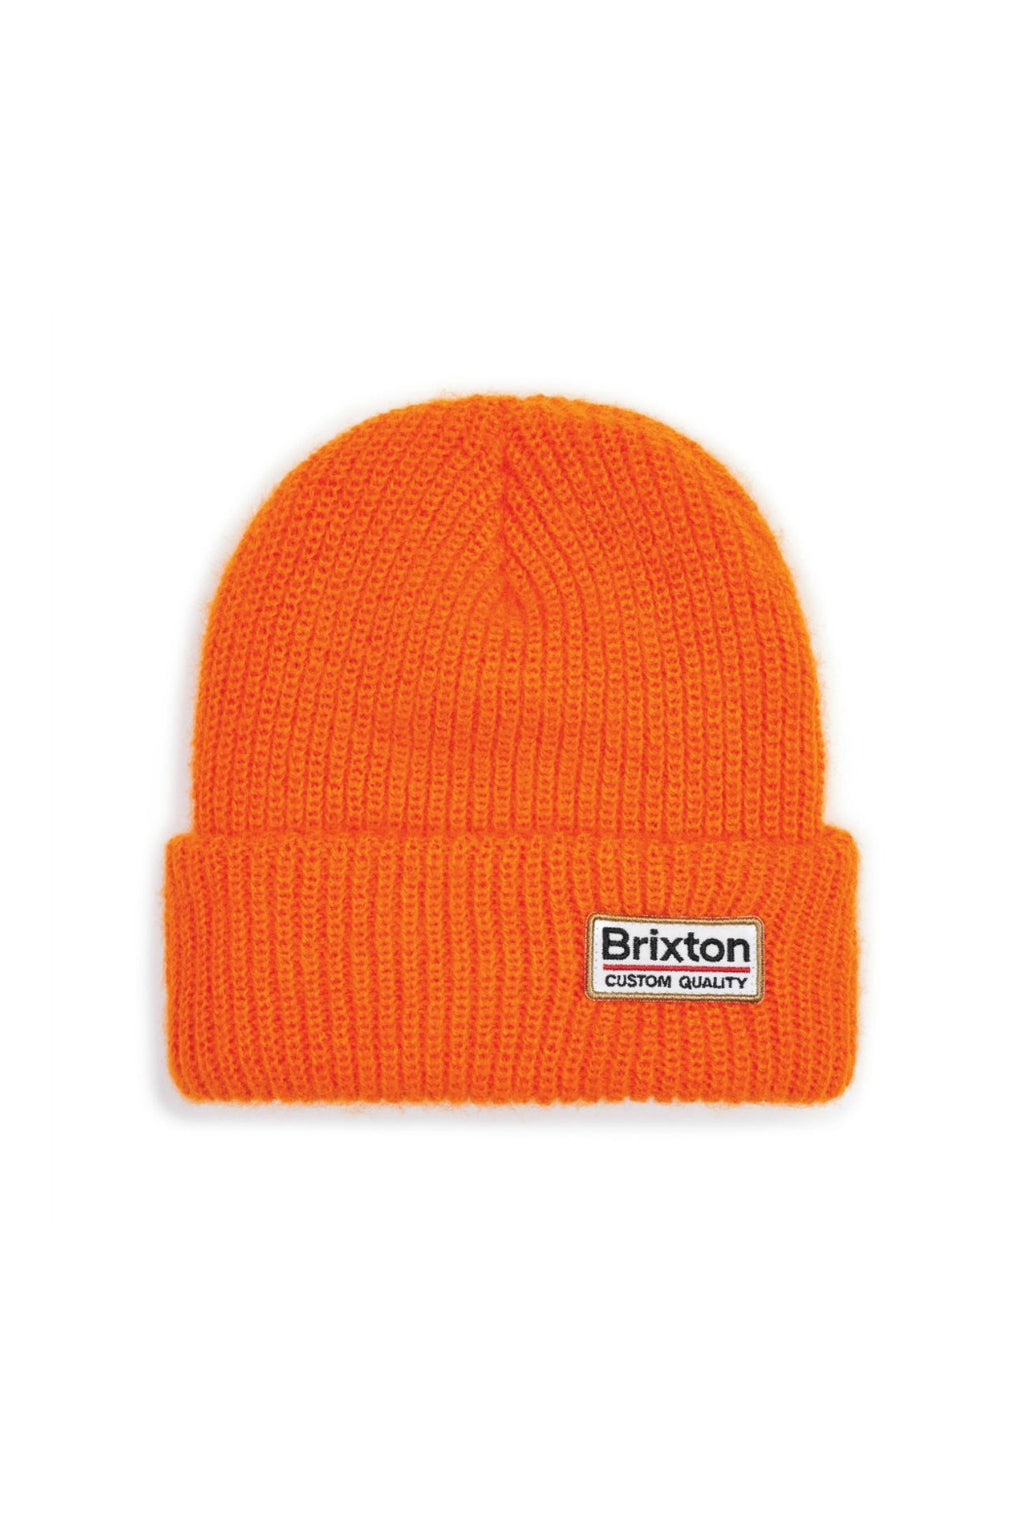 Brixton Palmer ll Beanie in Athletic Orange